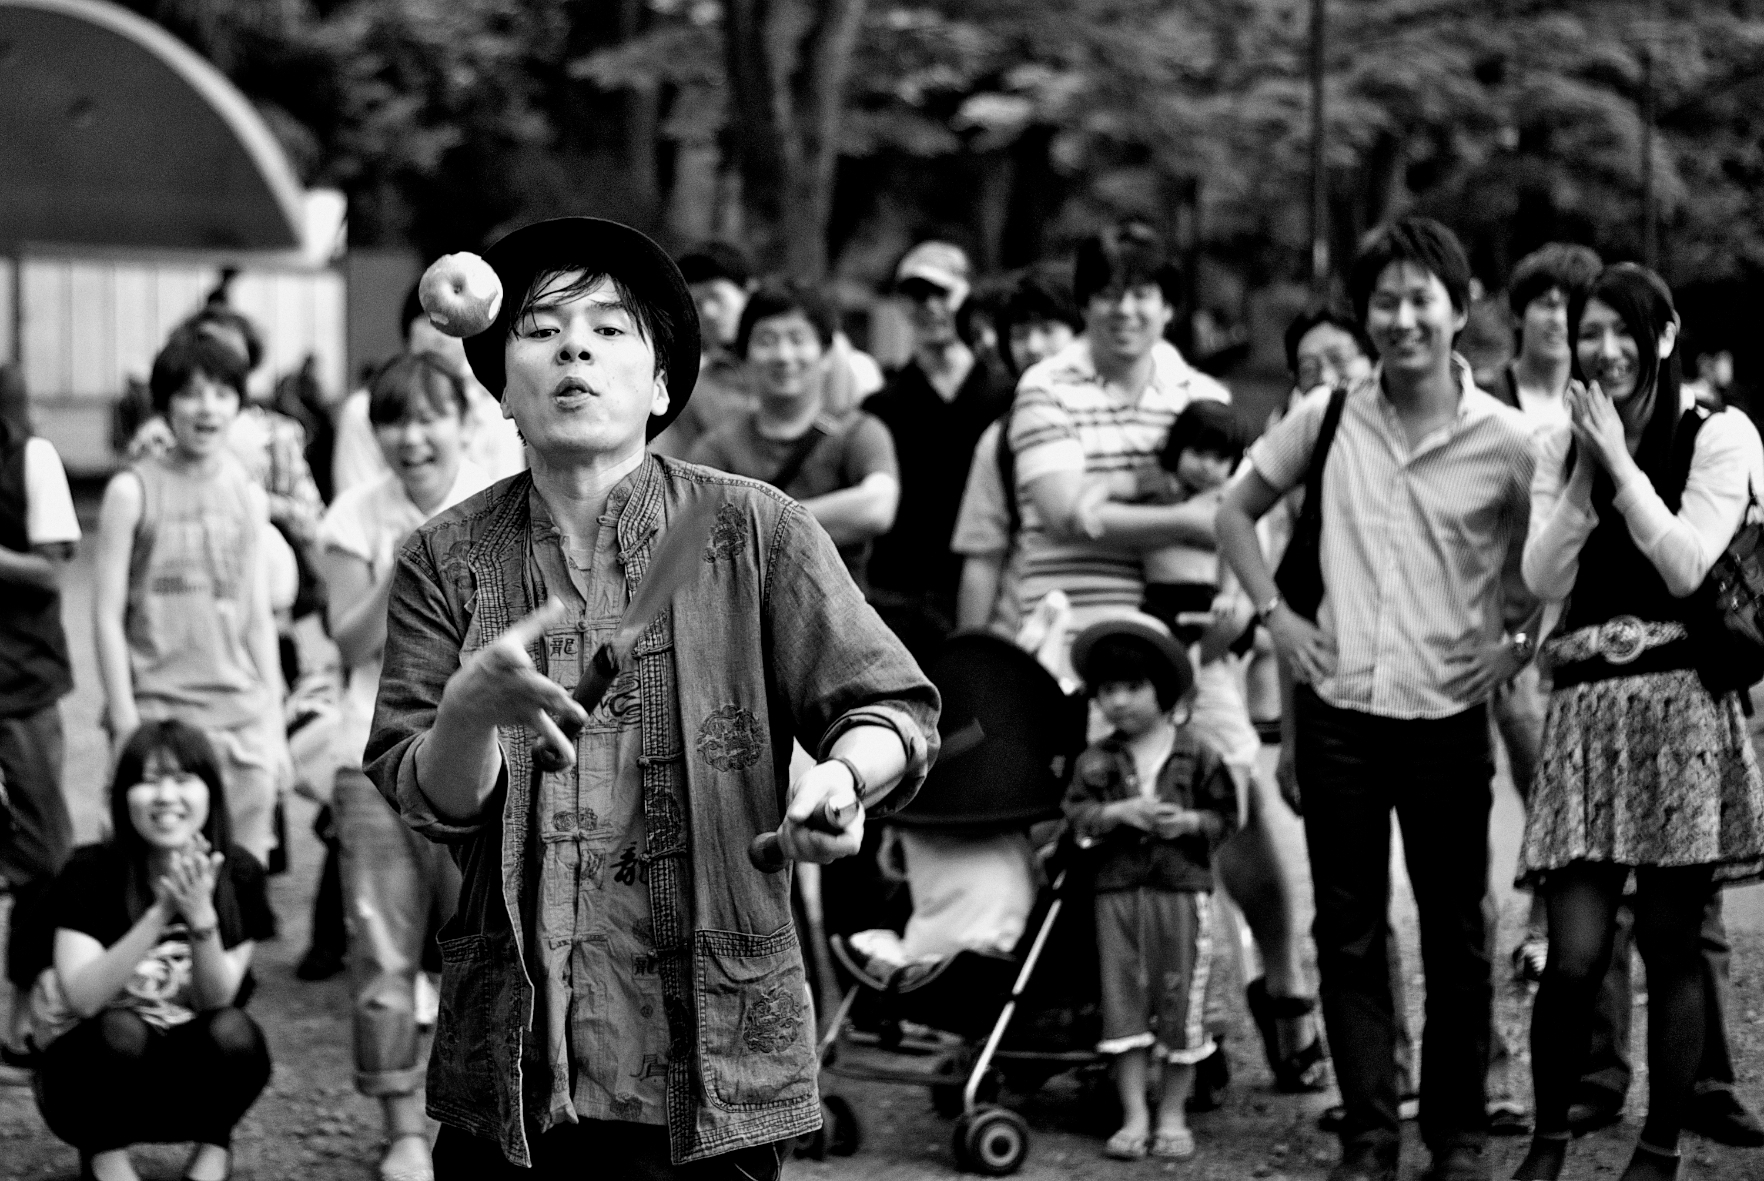 Apple and Knives, juggler at Inokashira Park, Tokyo